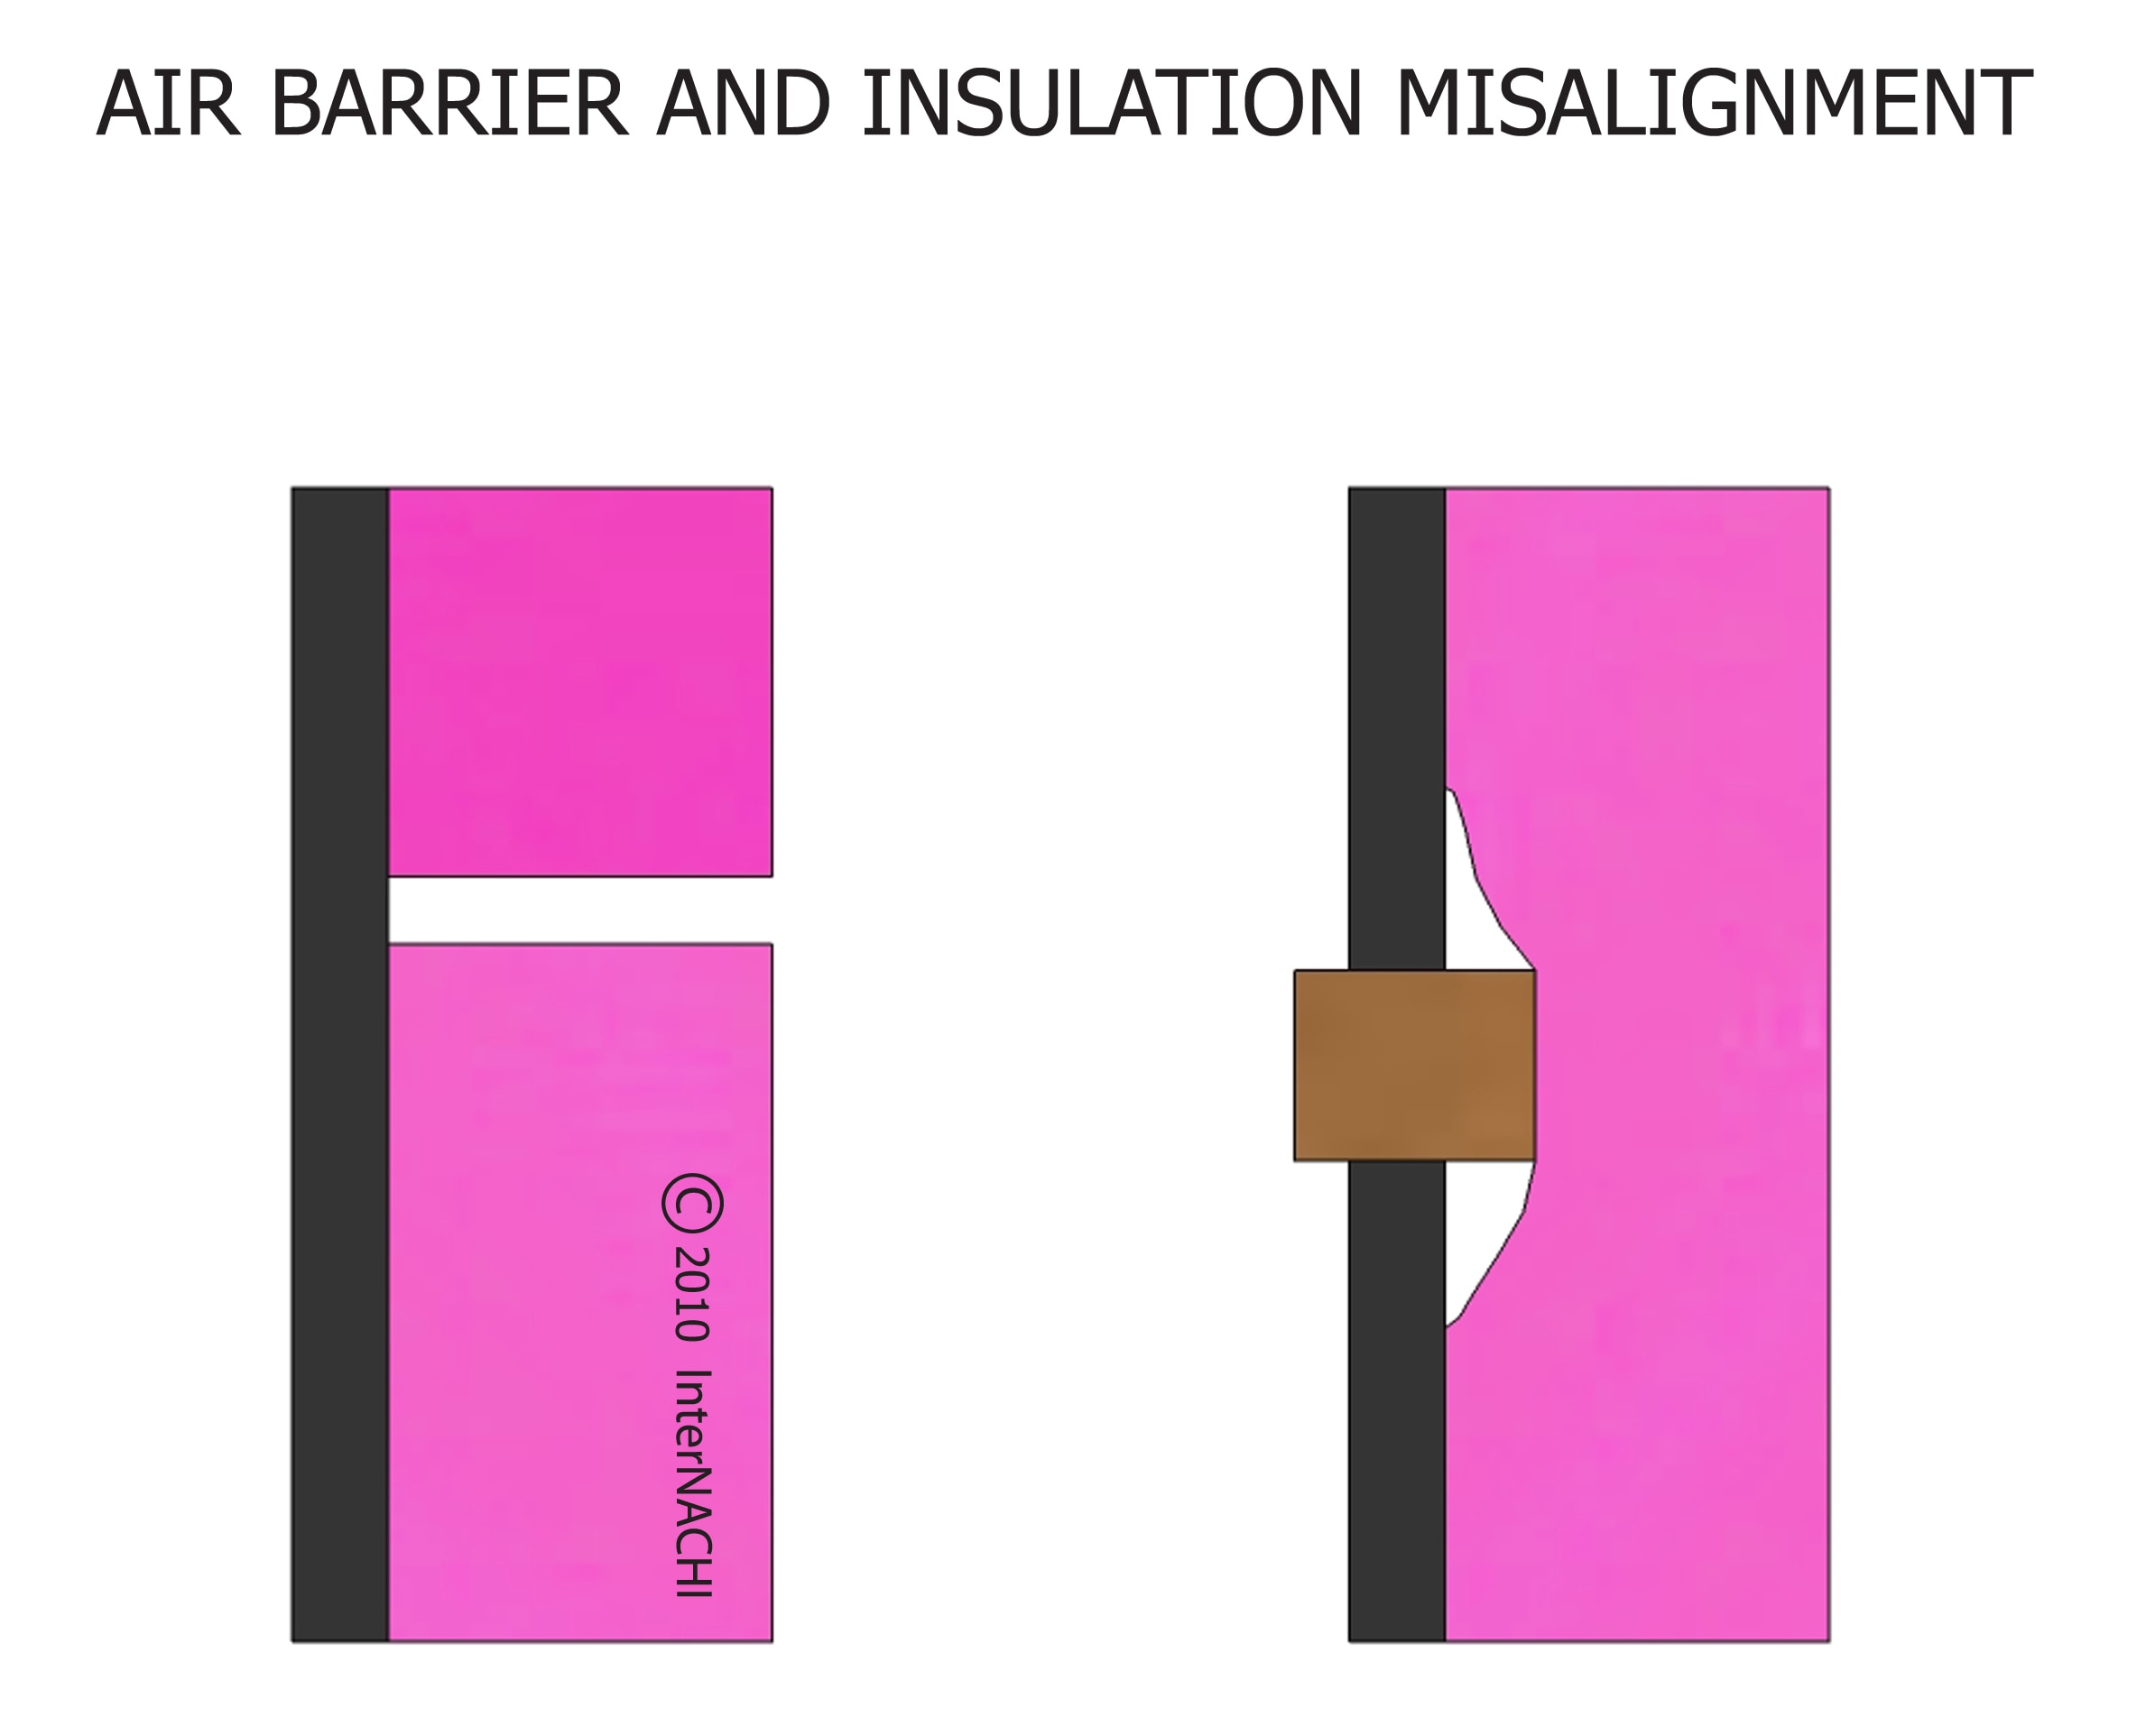 Air barrier and insulation misalignment.